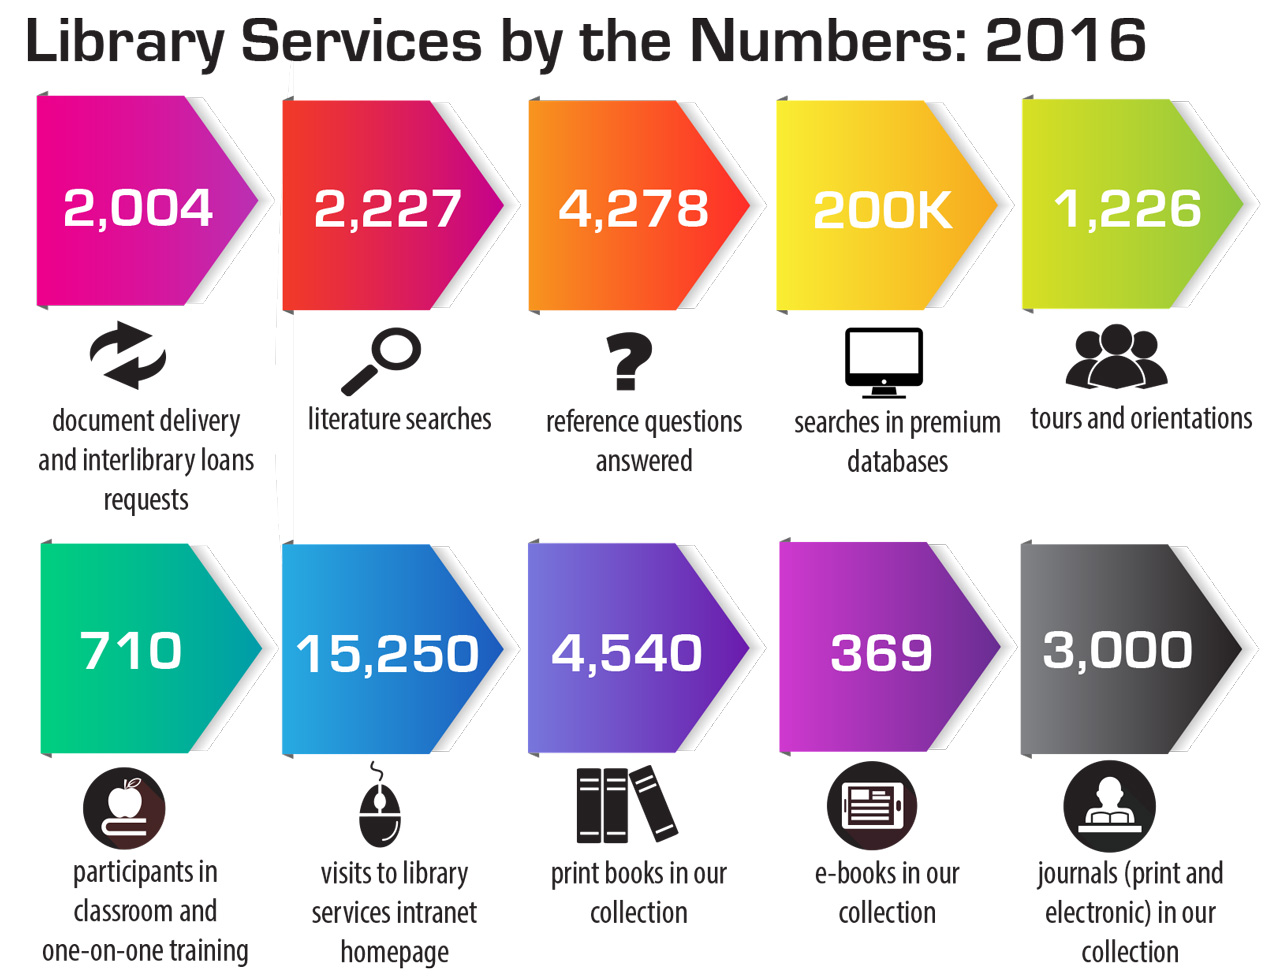 Library Services by the Numbers